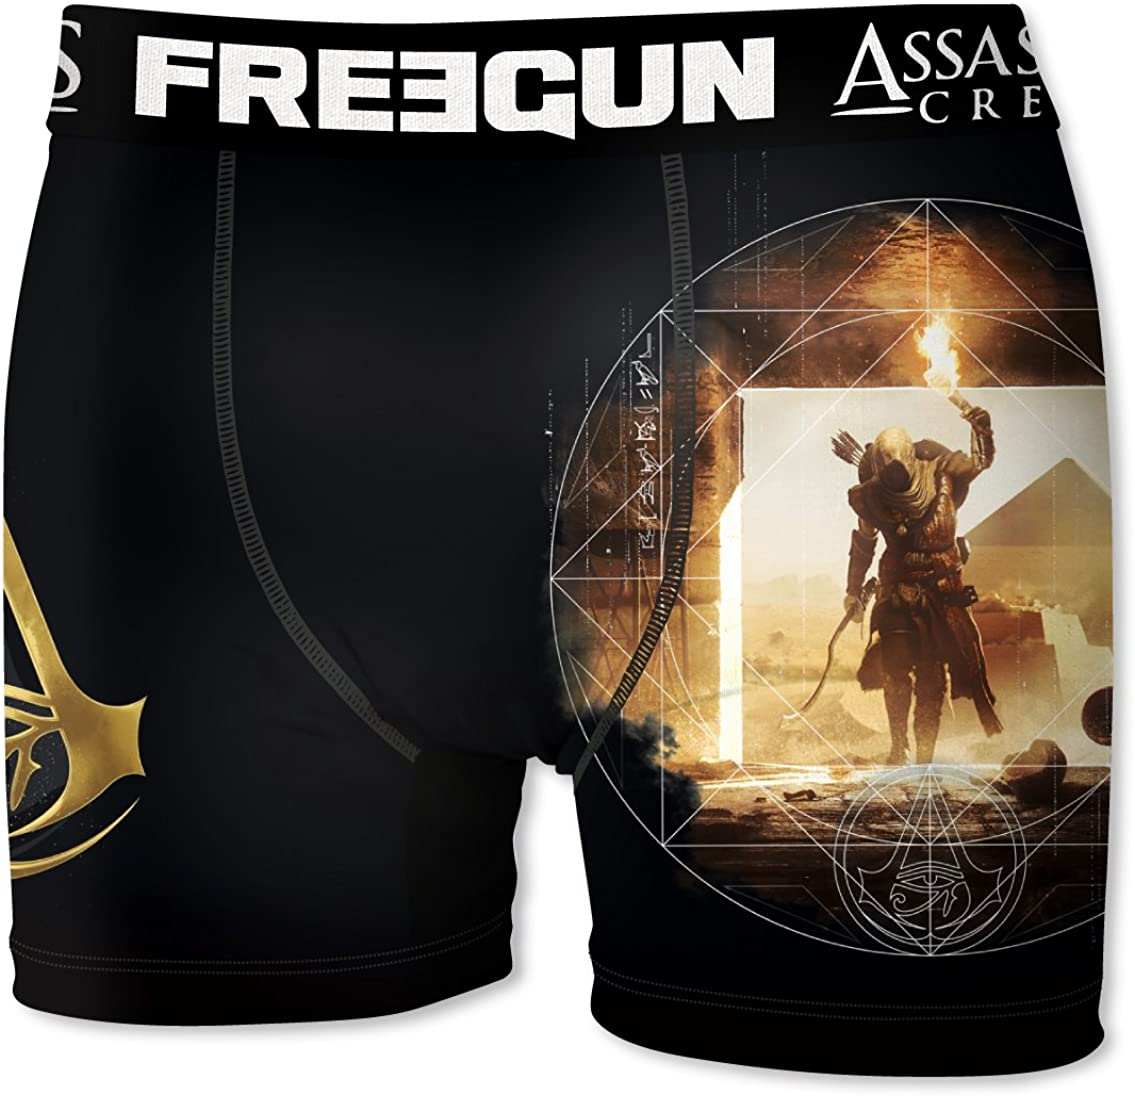 FREEGUN Bóxer para Hombre Assassin's Creed Origins